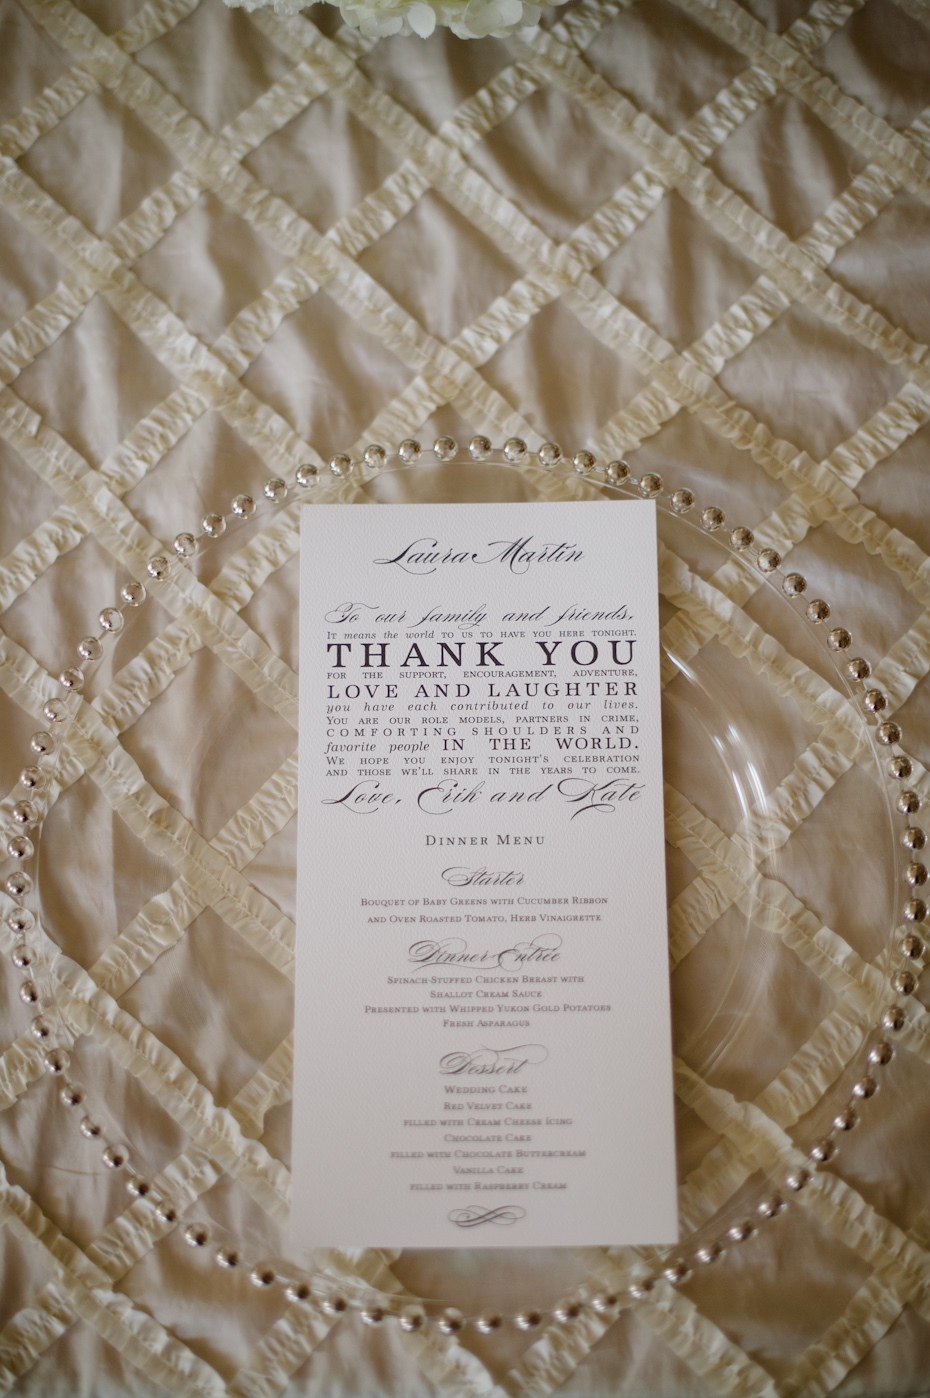 Menu Card with note to guests